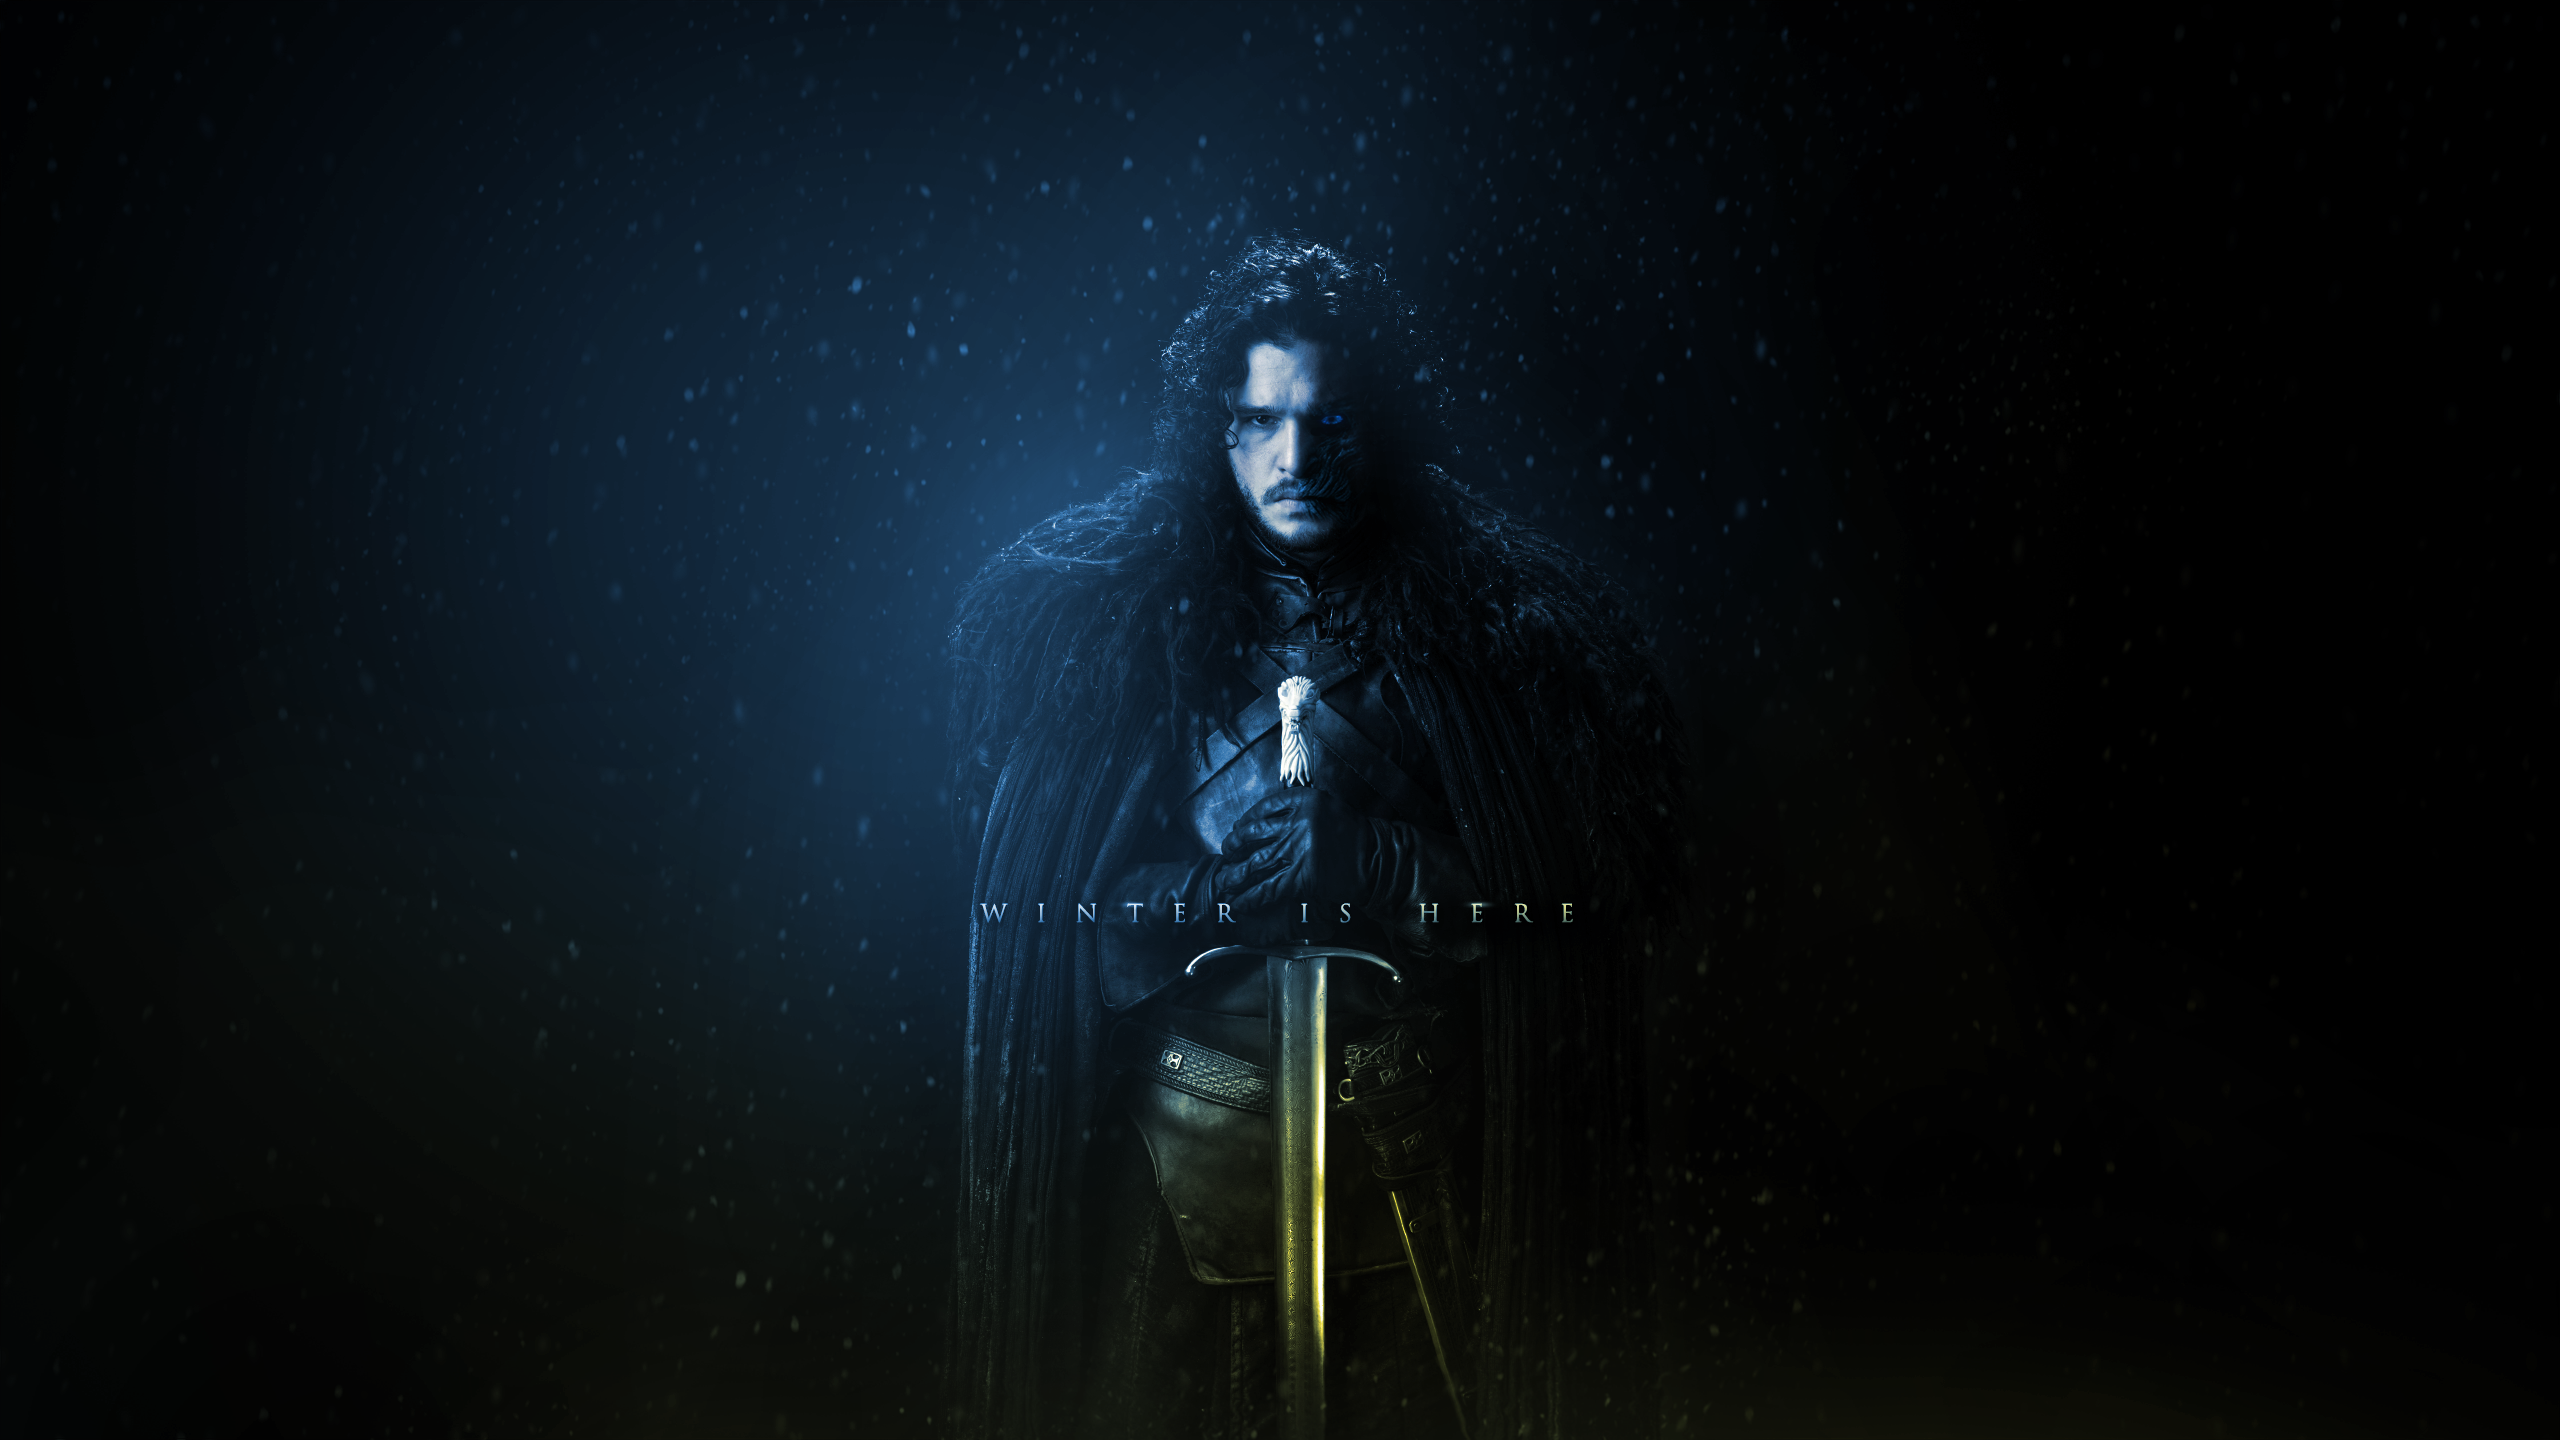 Game of Thrones Wallpaper - Jon Snow by RockLou